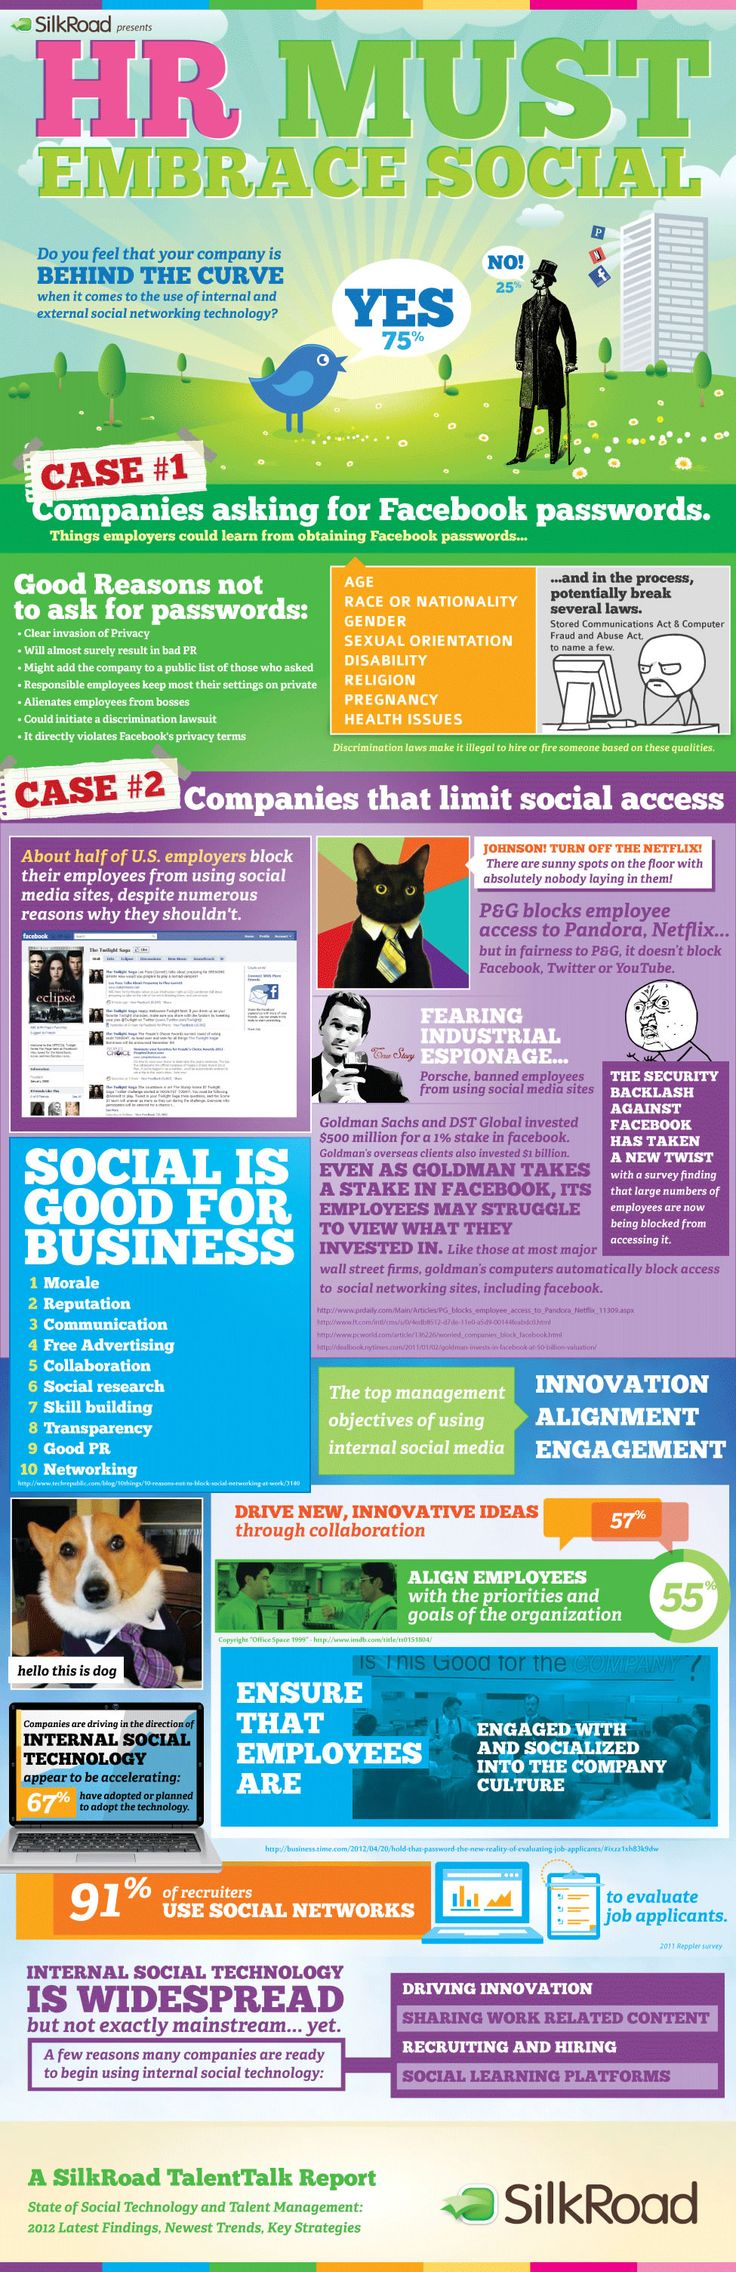 Human Resources must embrace Social Media http://itz-my.com